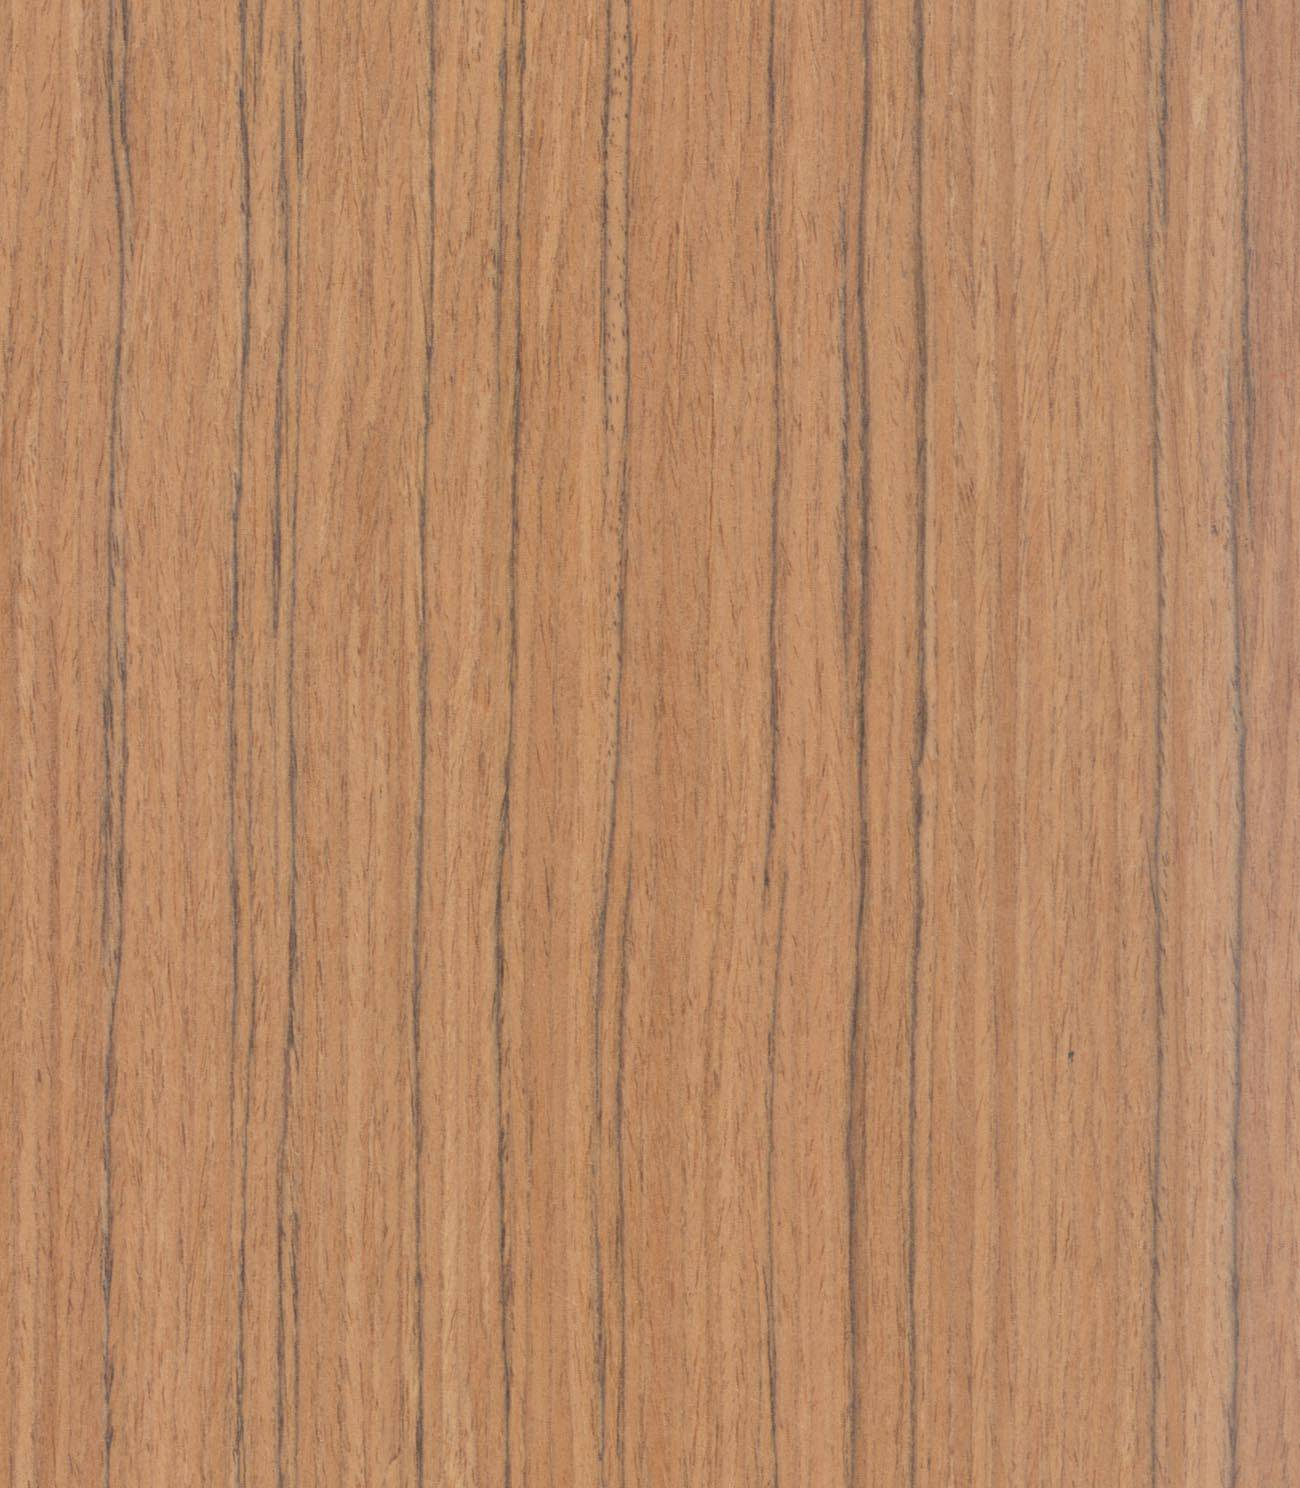 Engineered Wood Veneer Teak206 Shandong Kaiyuan Wood